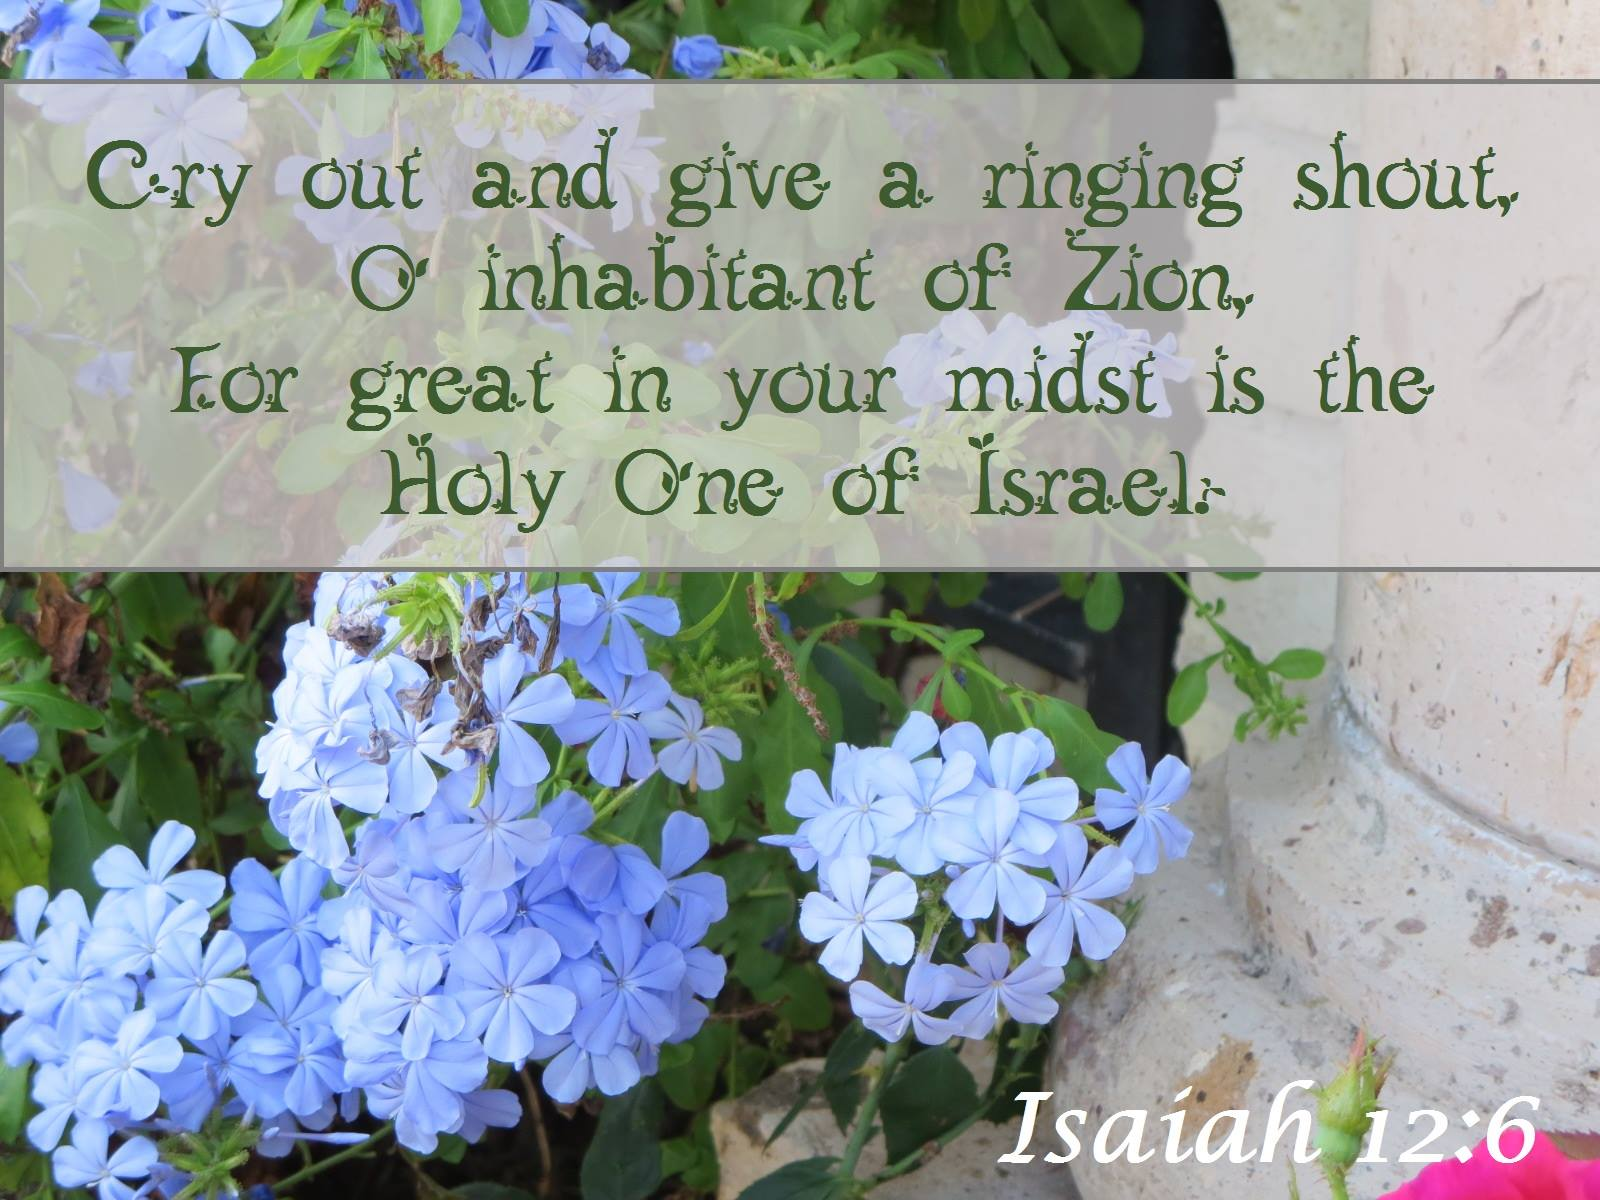 Isaiah 12:6 Cry out and give a ringing shout, O inhabitant of Zion, For great in your midst is the Holy One of Israel.